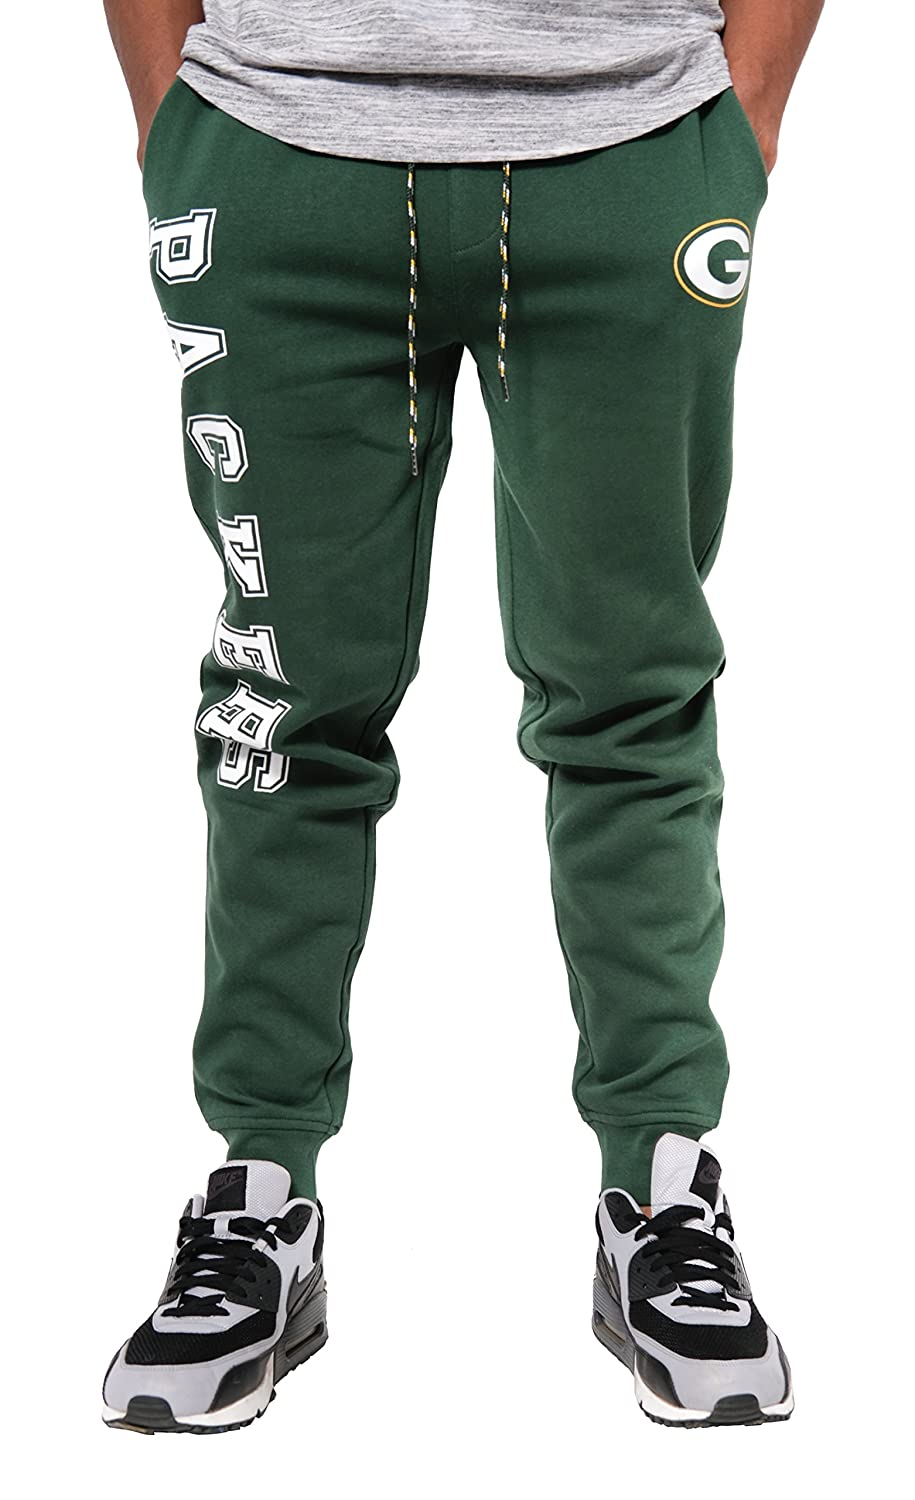 (Green Bay Packers, Large) - Icer Brands NFL Men's Jogger Pants Active Basic Fleece Sweatpants, Team Colour   B01MXIMJ25